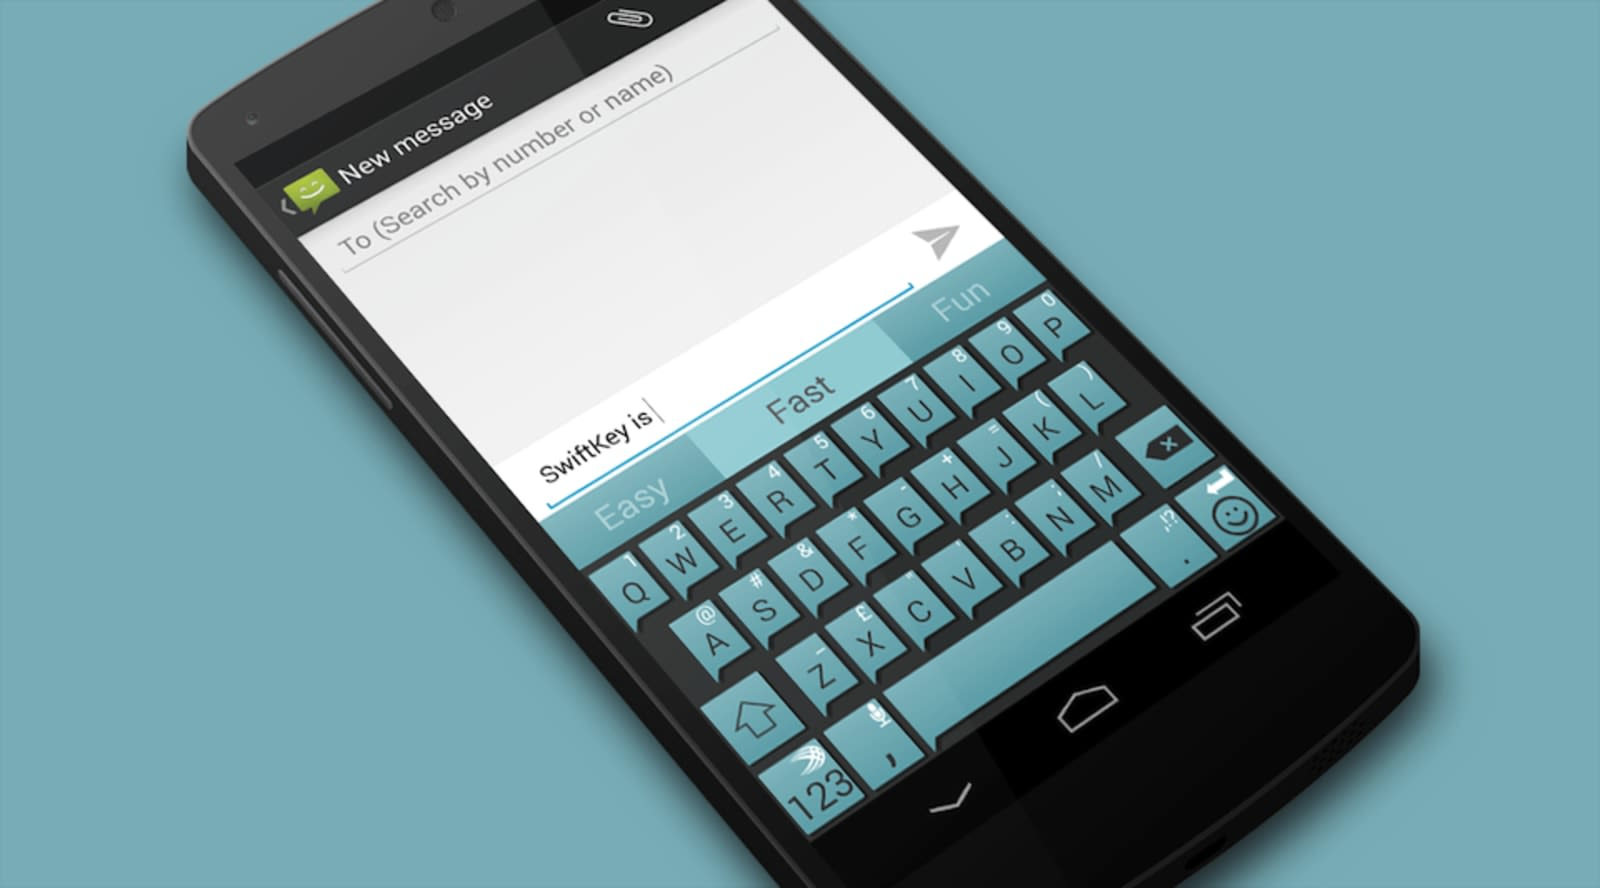 3f4b10e521a Autocorrect mistakes are supposed to be funny, but a new SwiftKey glitch  turned out to be sort of alarming. For the last week, some SwiftKey users  have been ...